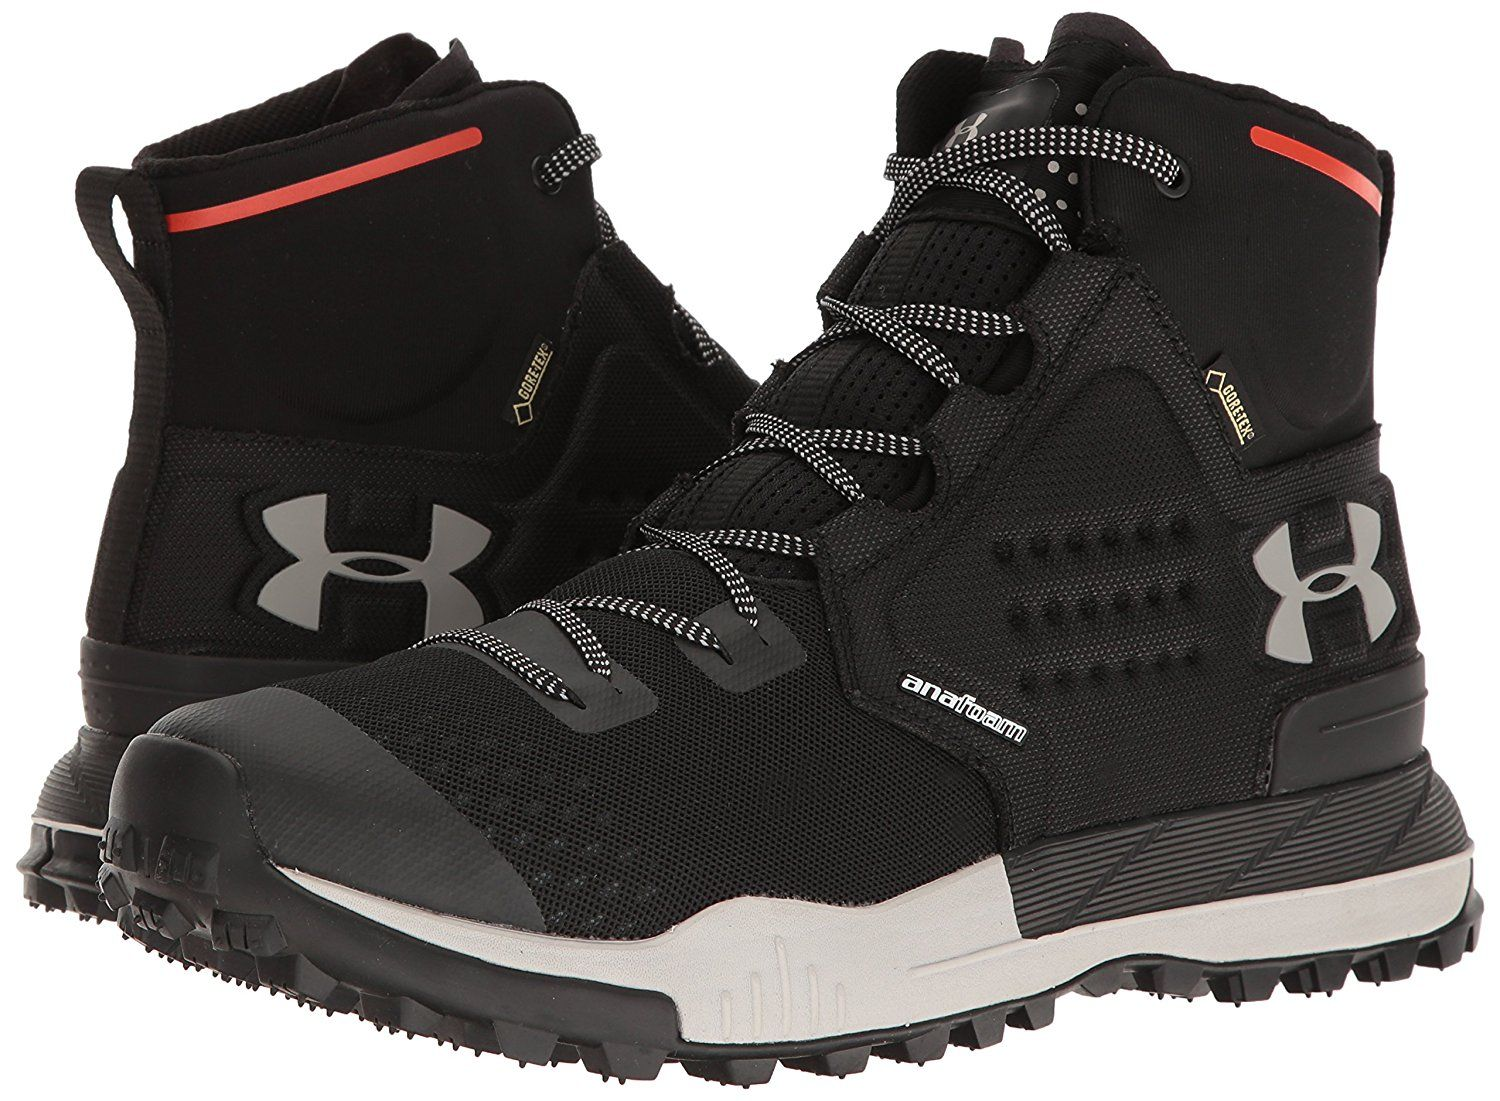 Under Armour Men S Newell Ridge Mid Gore Tex Be Sure To Check Out This Awesome Product This Mens Boots Fashion Gore Tex Hiking Boots Sneakers Men Fashion